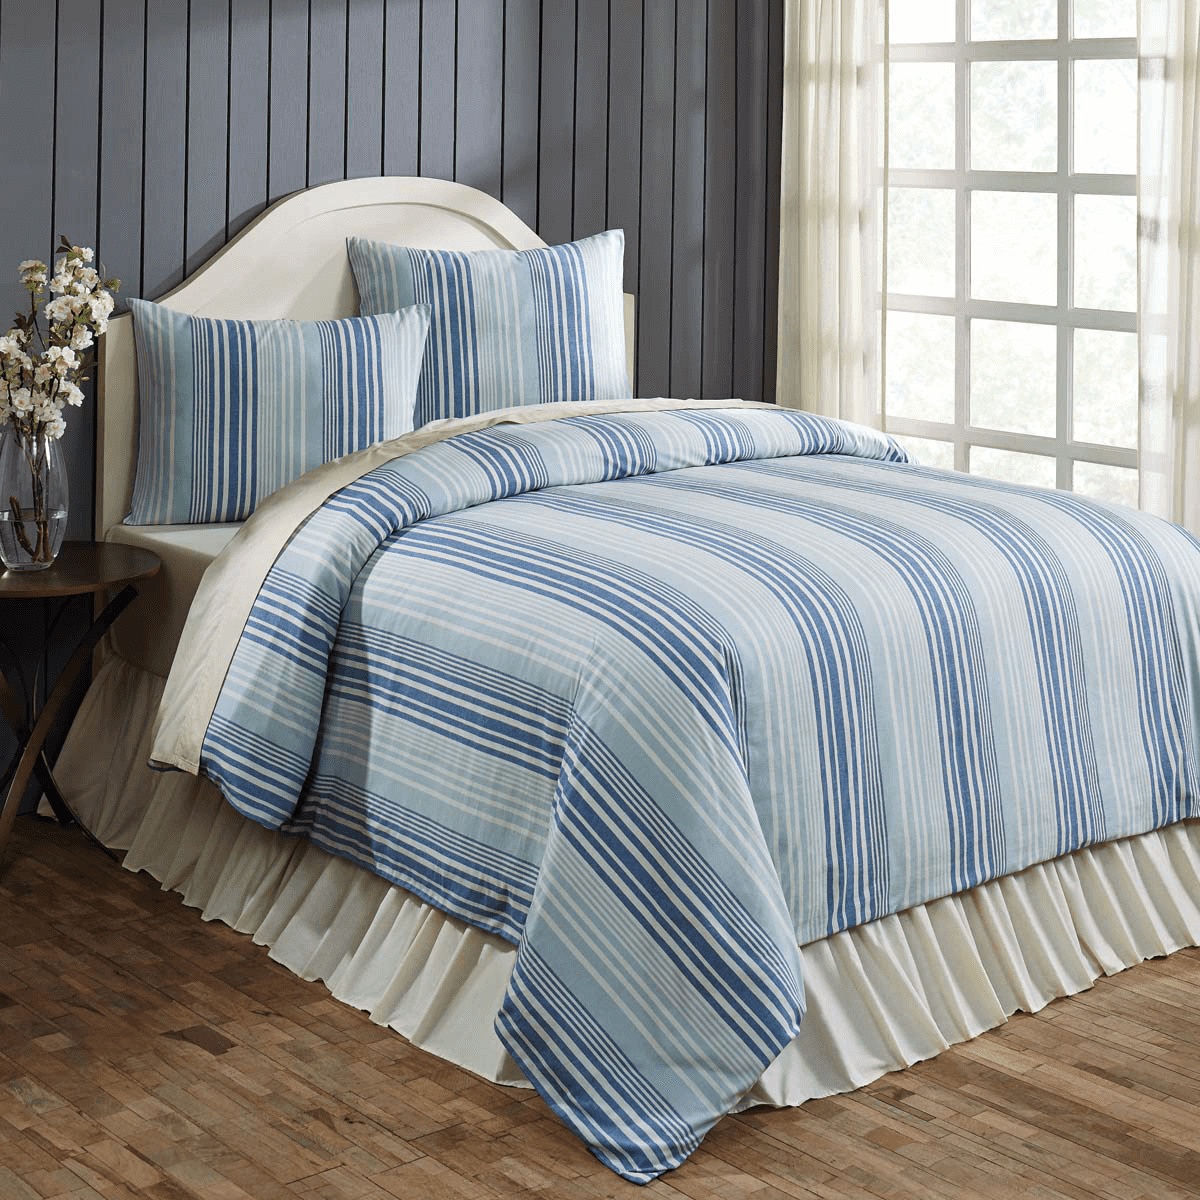 Size: Full Queen One Bella Casa Edit Stripe Lightweight Duvet Cover Replace your basic bedding with a colorful fun duvet cover. Th e lightweight microfiber is a soft hypoallergenic fabric with a soft touch similar thread count fabric.